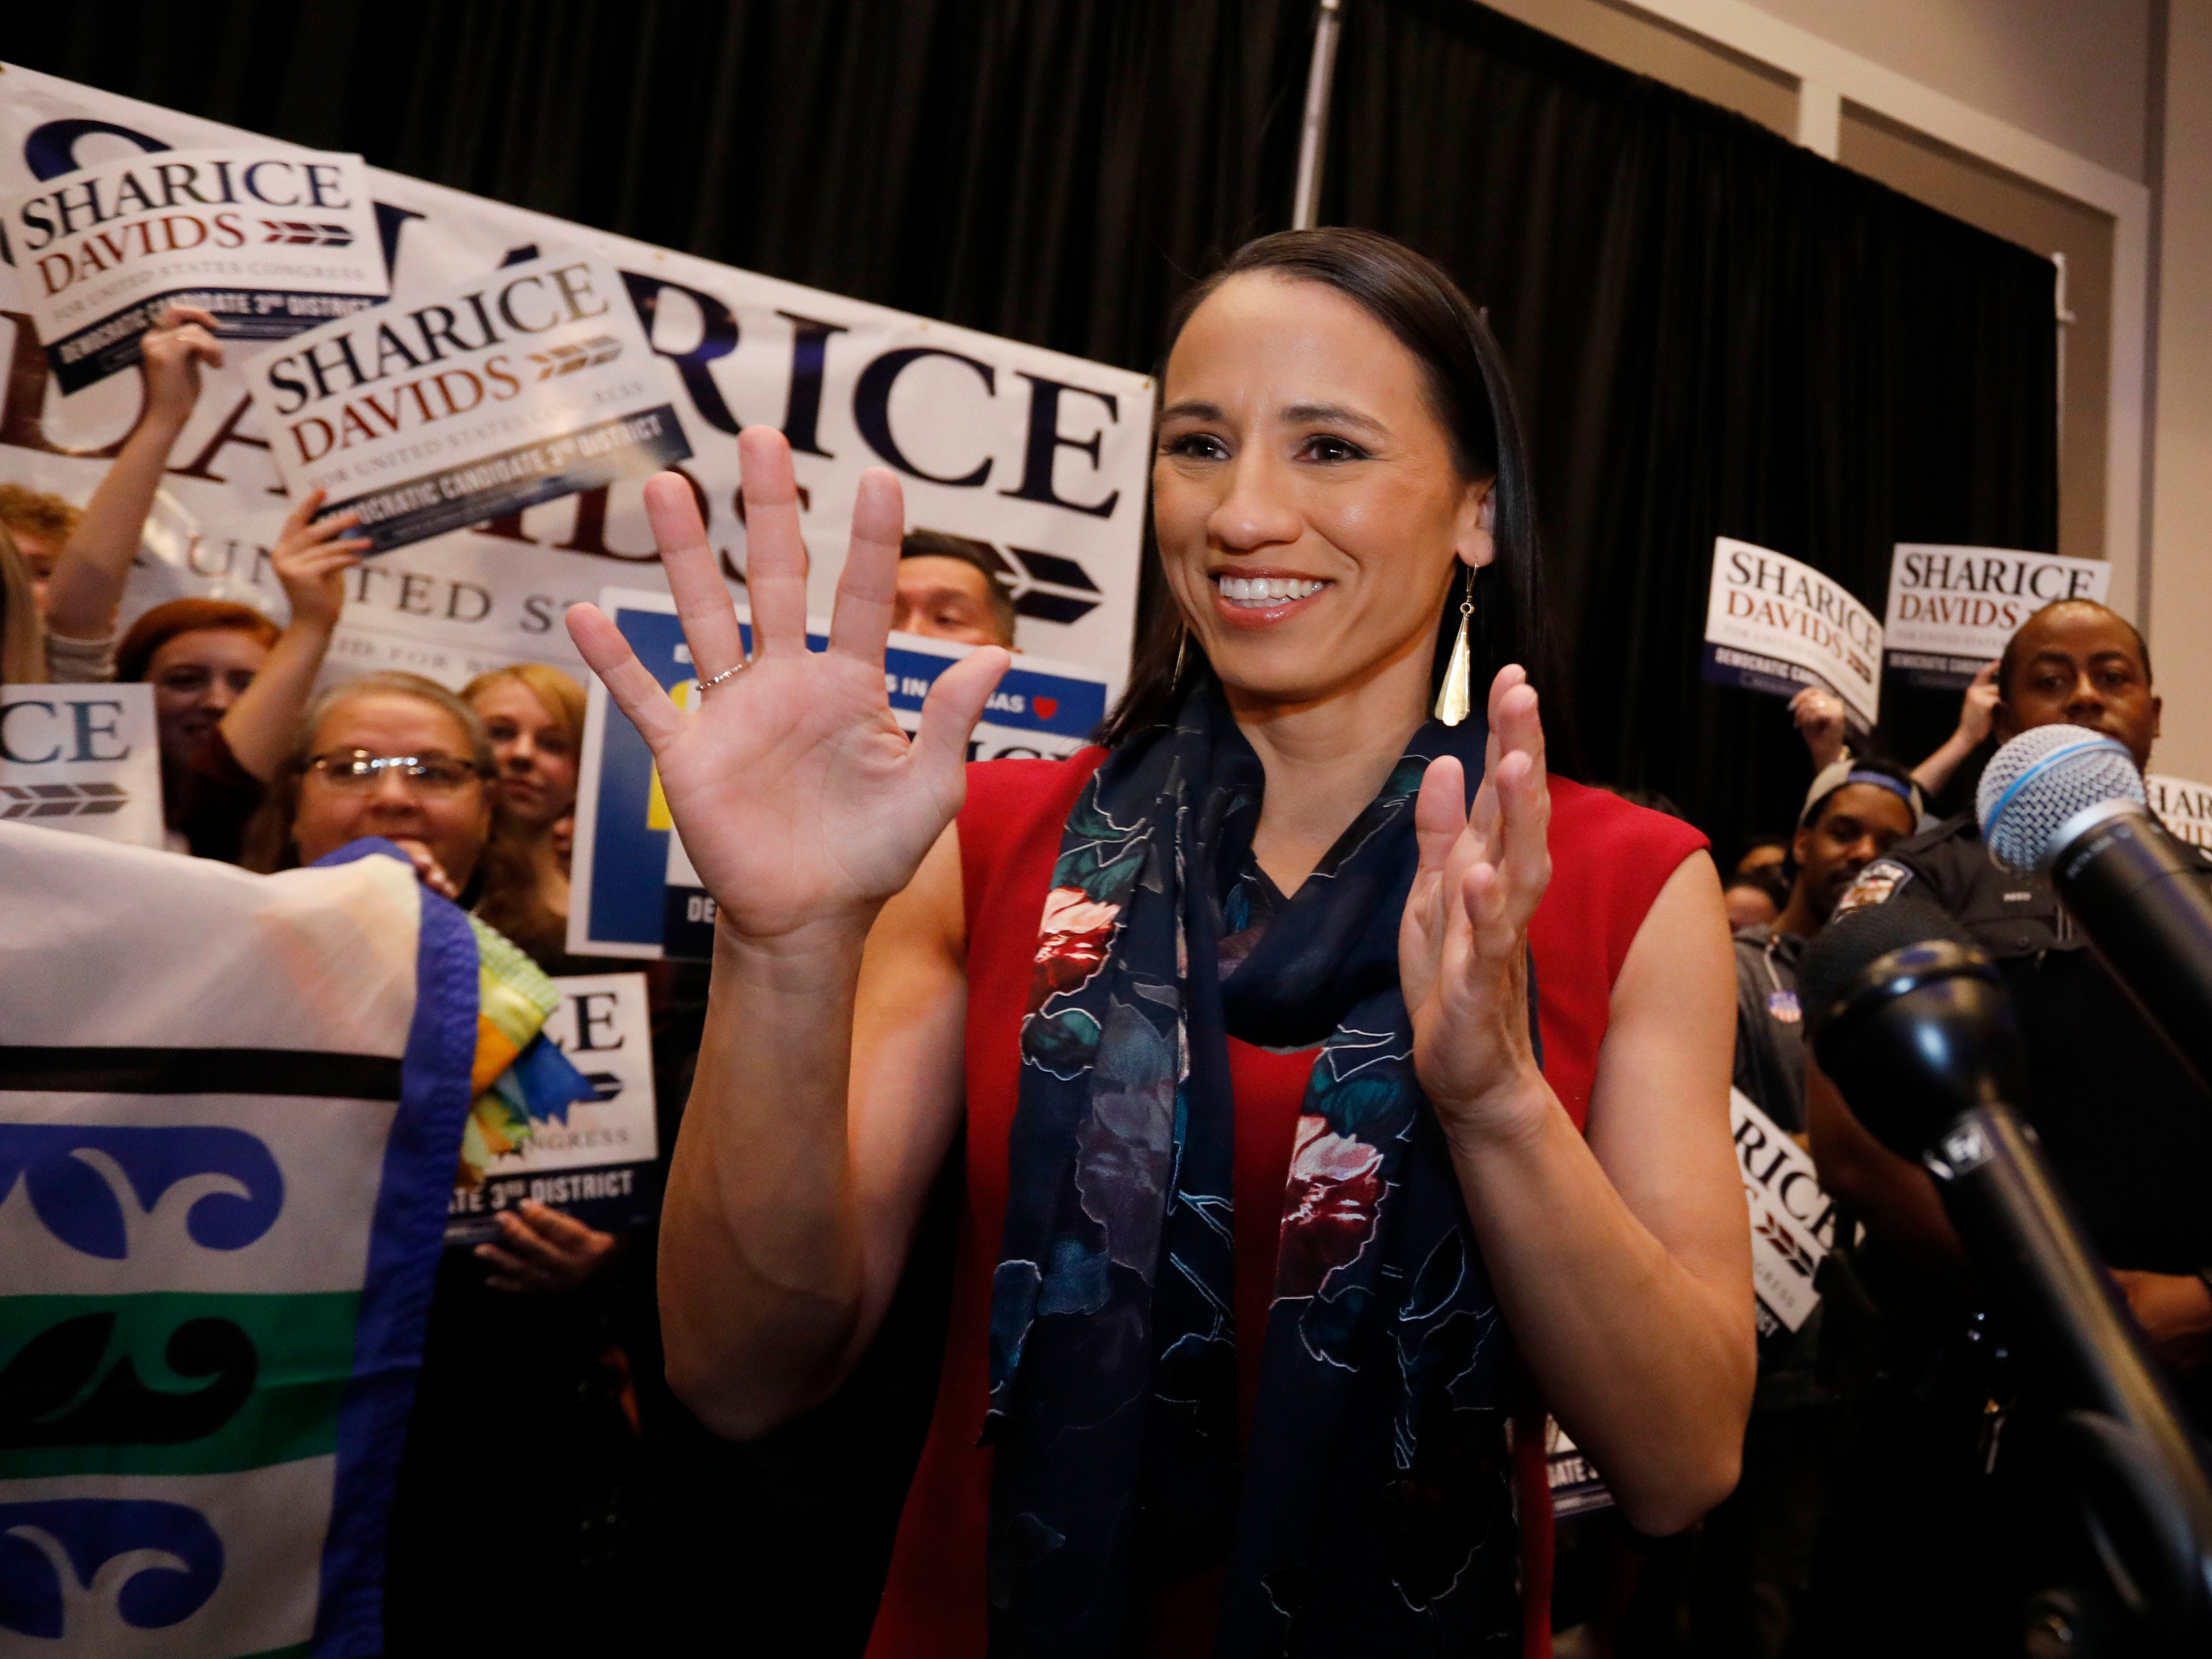 Democrat house candidate Sharice Davids reacts before speaking to supporters at a victory party in Olathe, Kan., Tuesday, Nov. 6, 2018. Davids defeated Republican incumbent Kevin Yoder to win the Kansas' 3rd Congressional District seat.